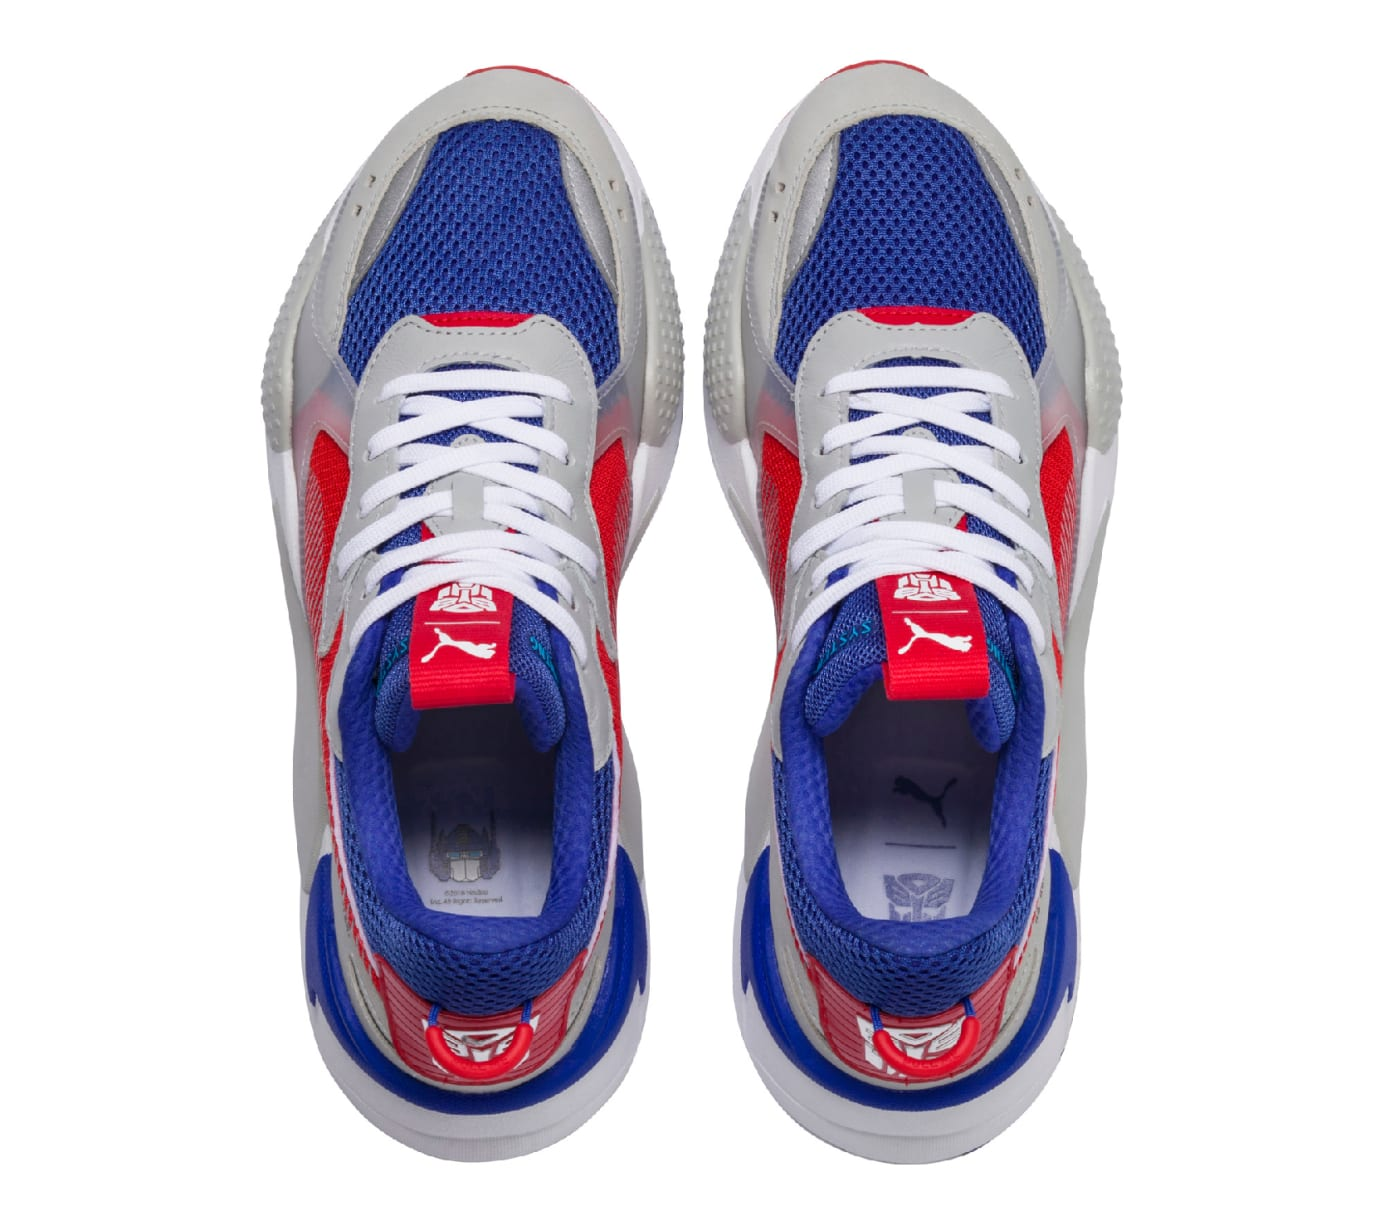 Hasbro x Puma RS-X Transformers 'Optimus Prime' (Top)